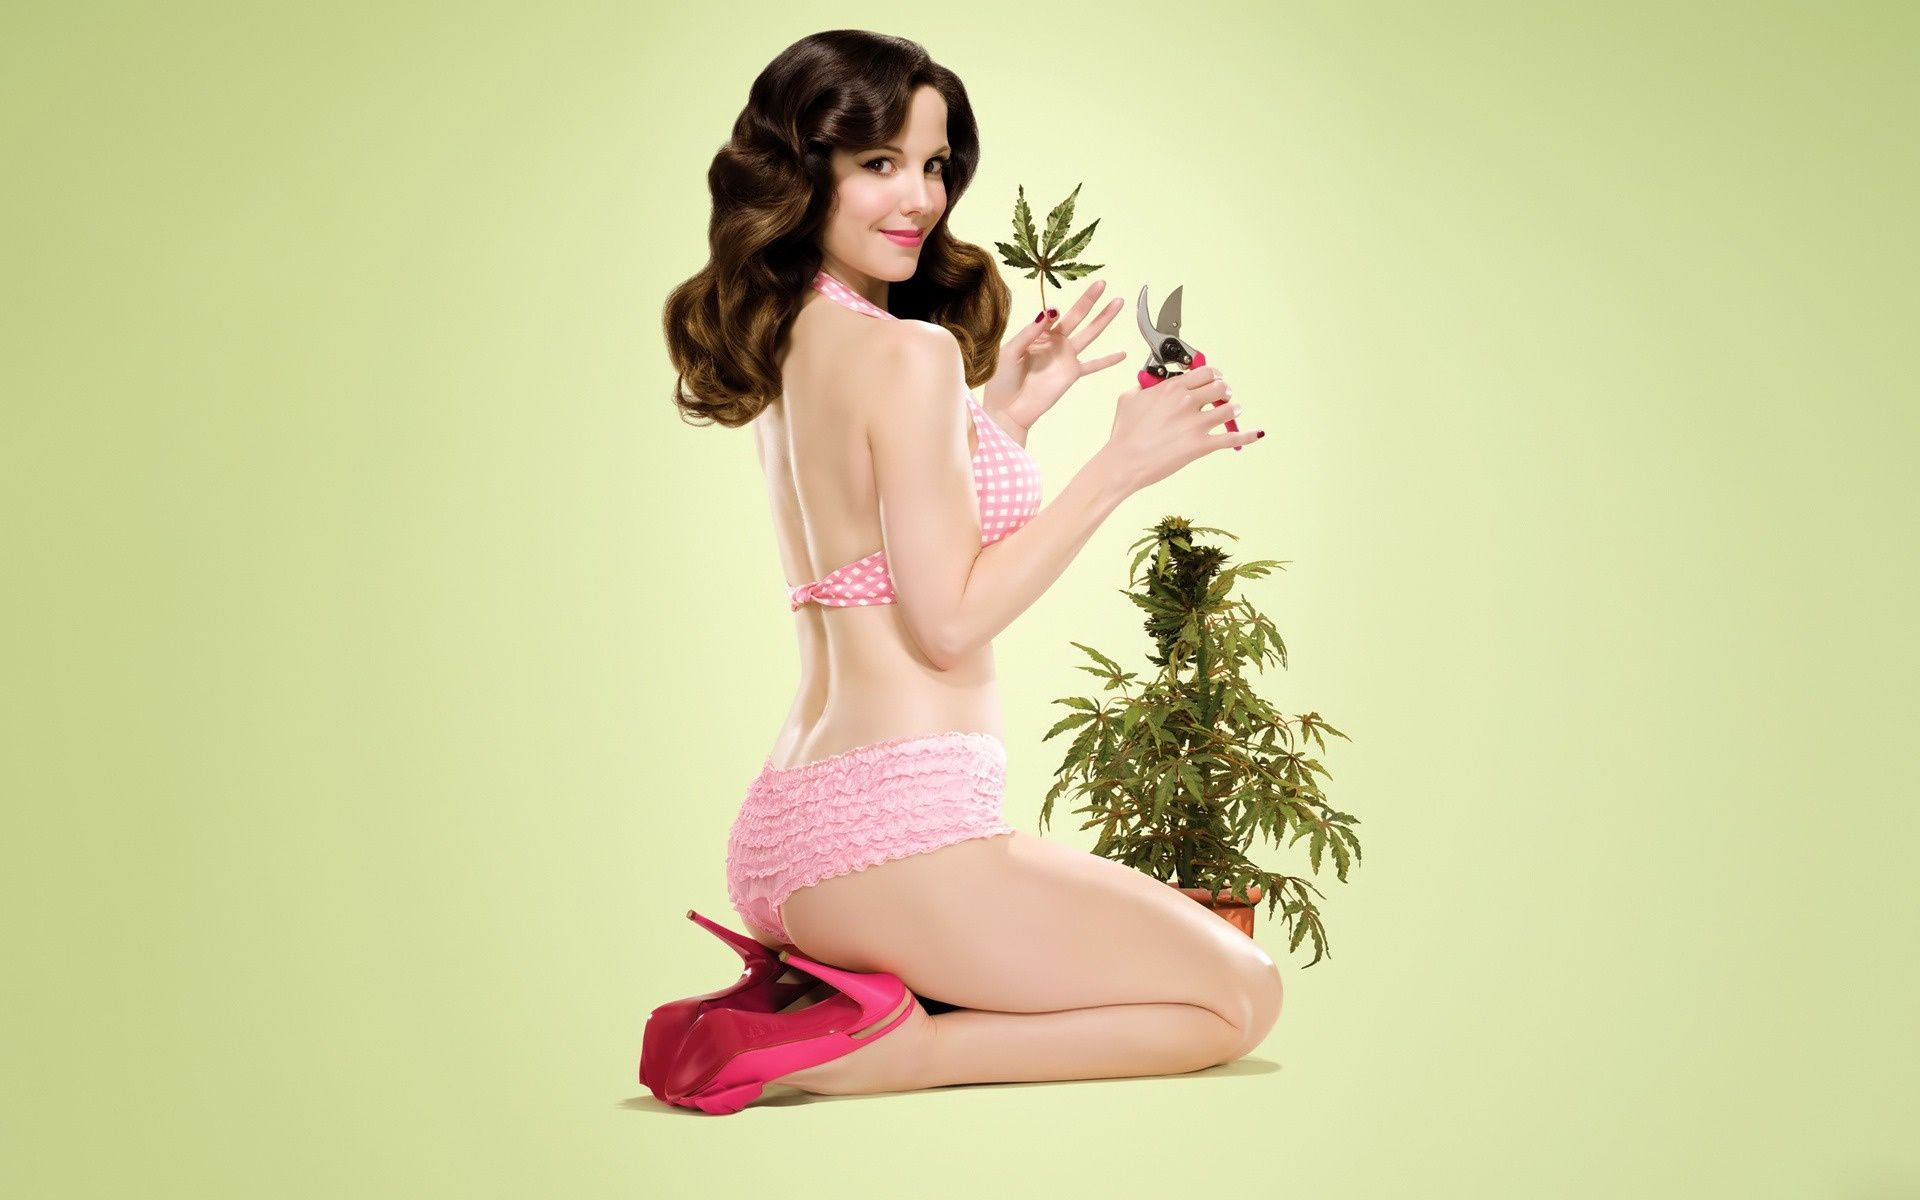 Image Result For Weed Girl 4 20 Pinterest Mary Louise Parker